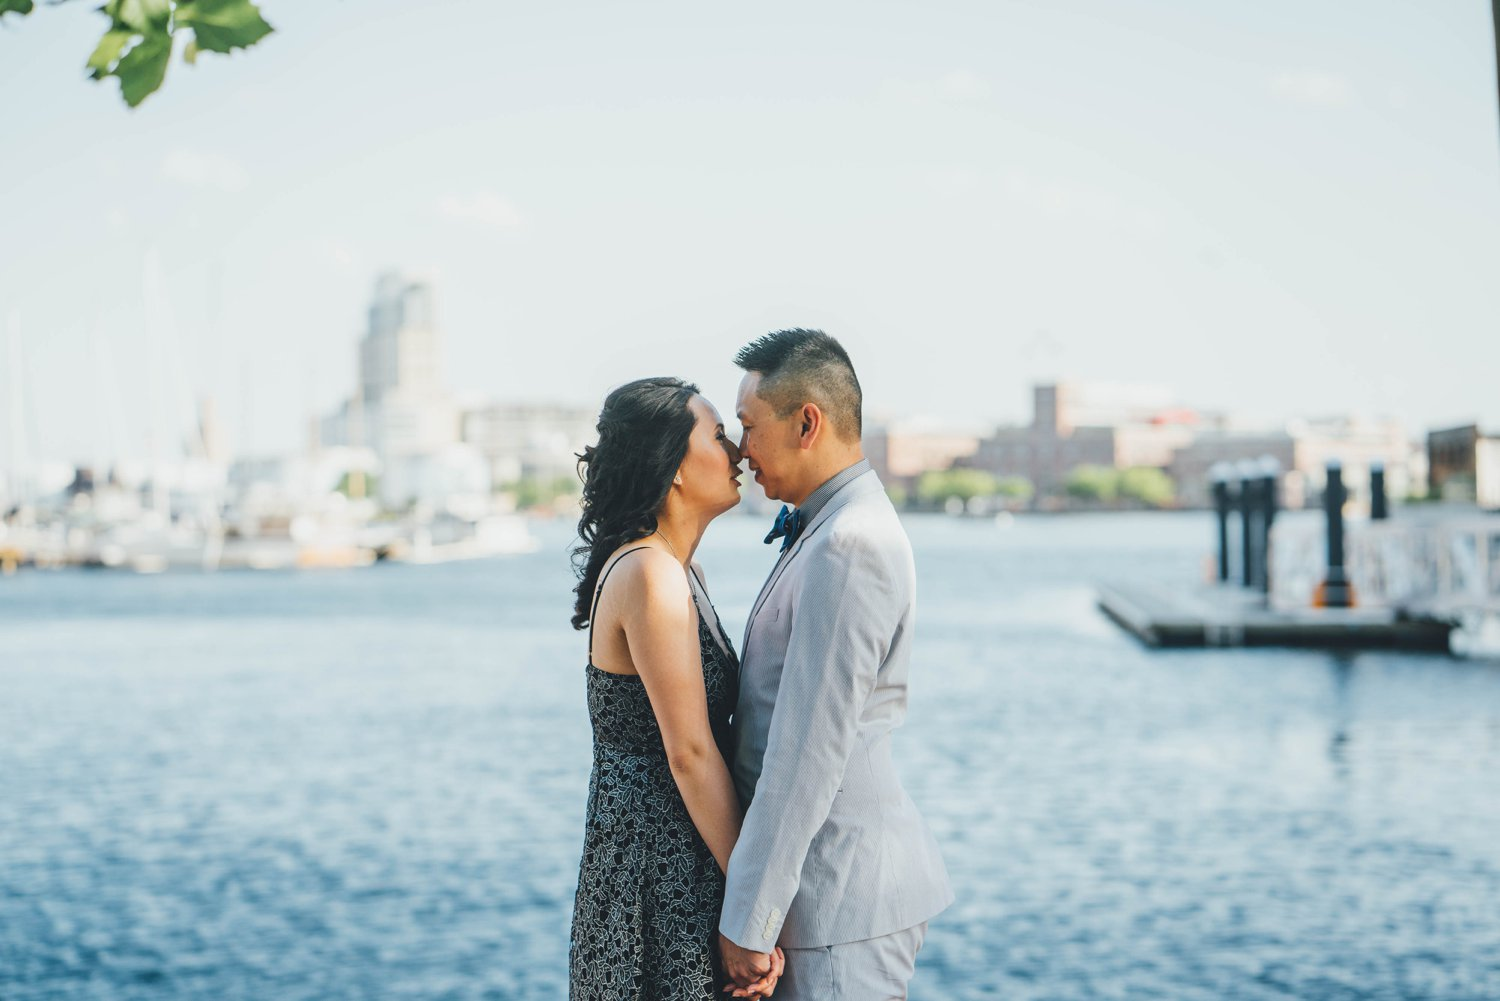 61NYC-NJ-ENGAGEMENT-PHOTOGRAPHY-BY-INTOTHESTORY-MOO-JAE.JPG